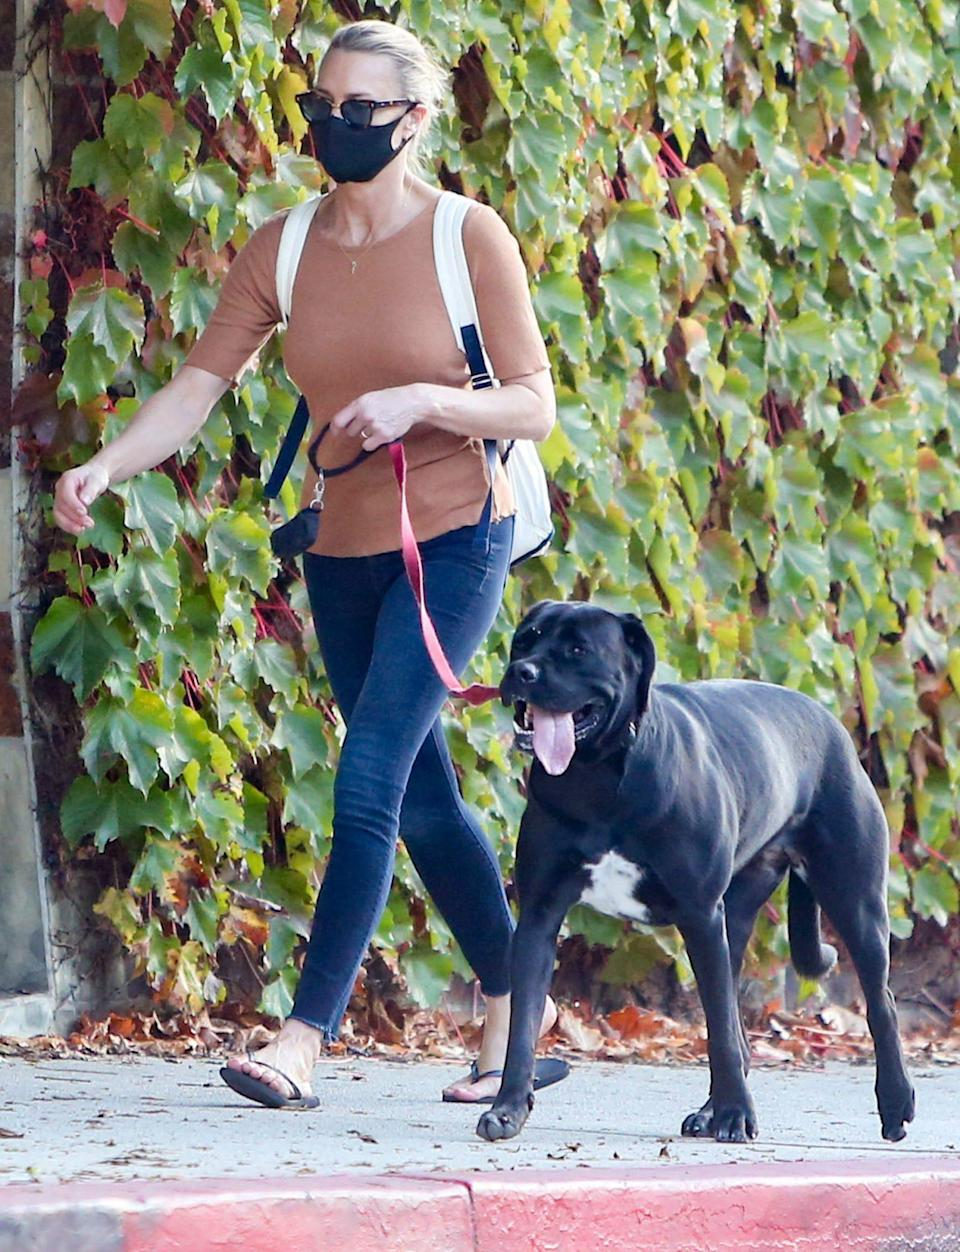 <p>Robin Wright goes for a walk with her dog on Monday in L.A., sporting a mask and backpack. </p>